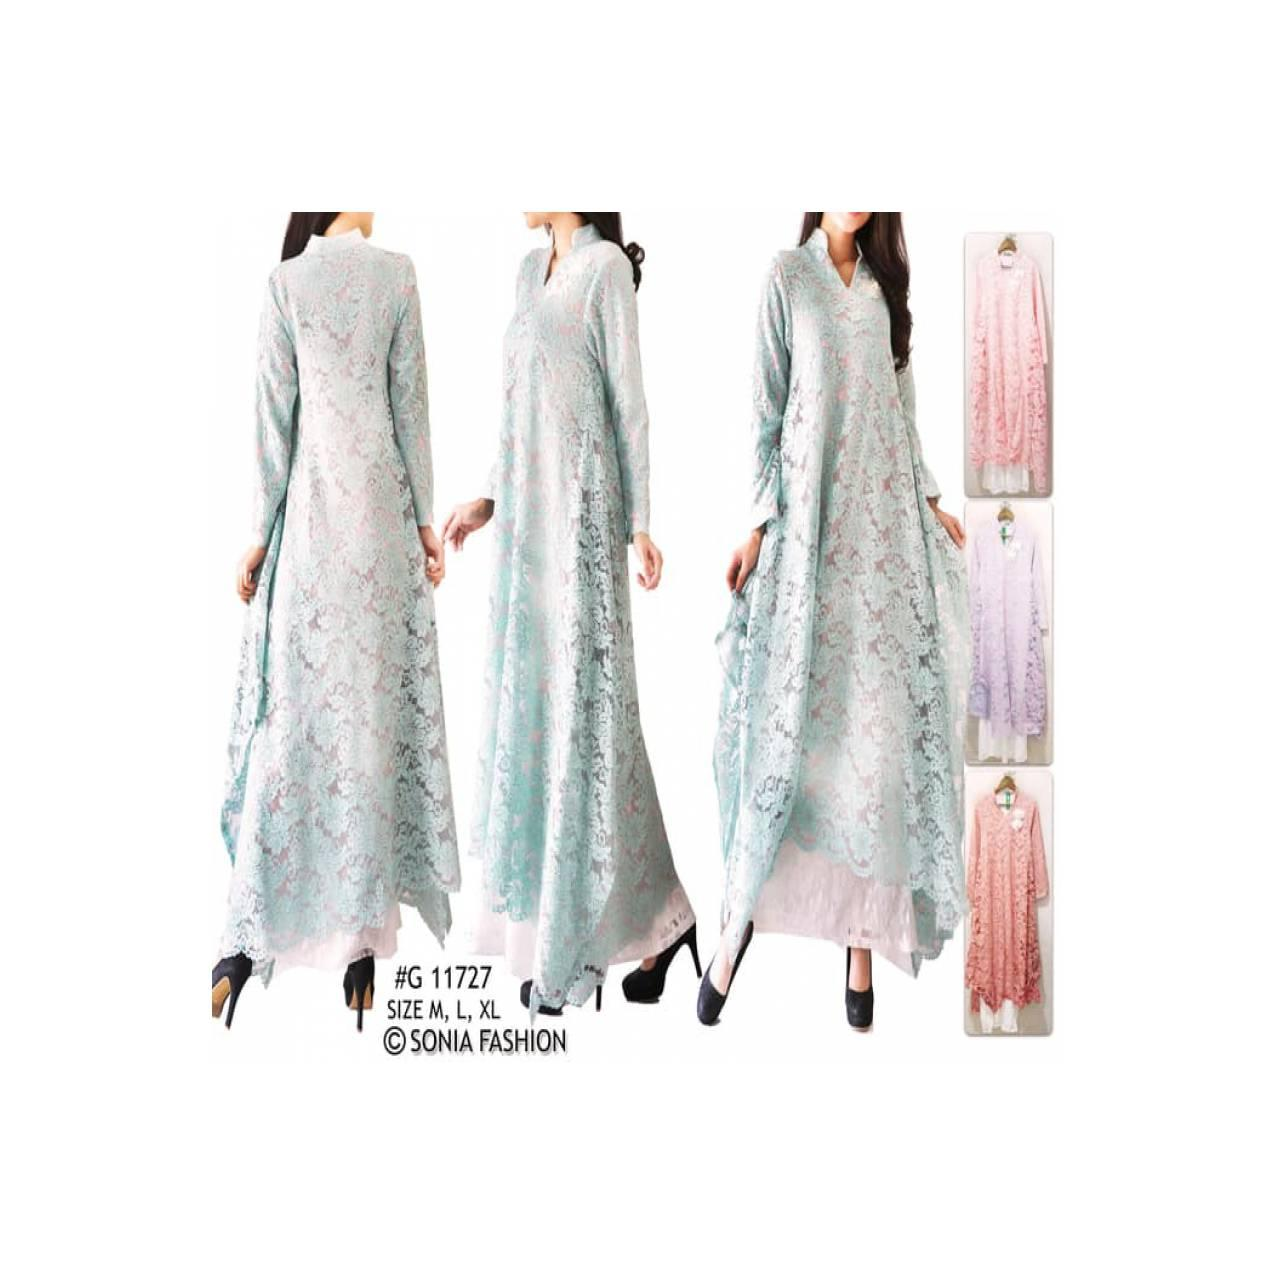 Gamis Maxi Full Brukat Zaskia Maxi Dress Lace Dresses 11727